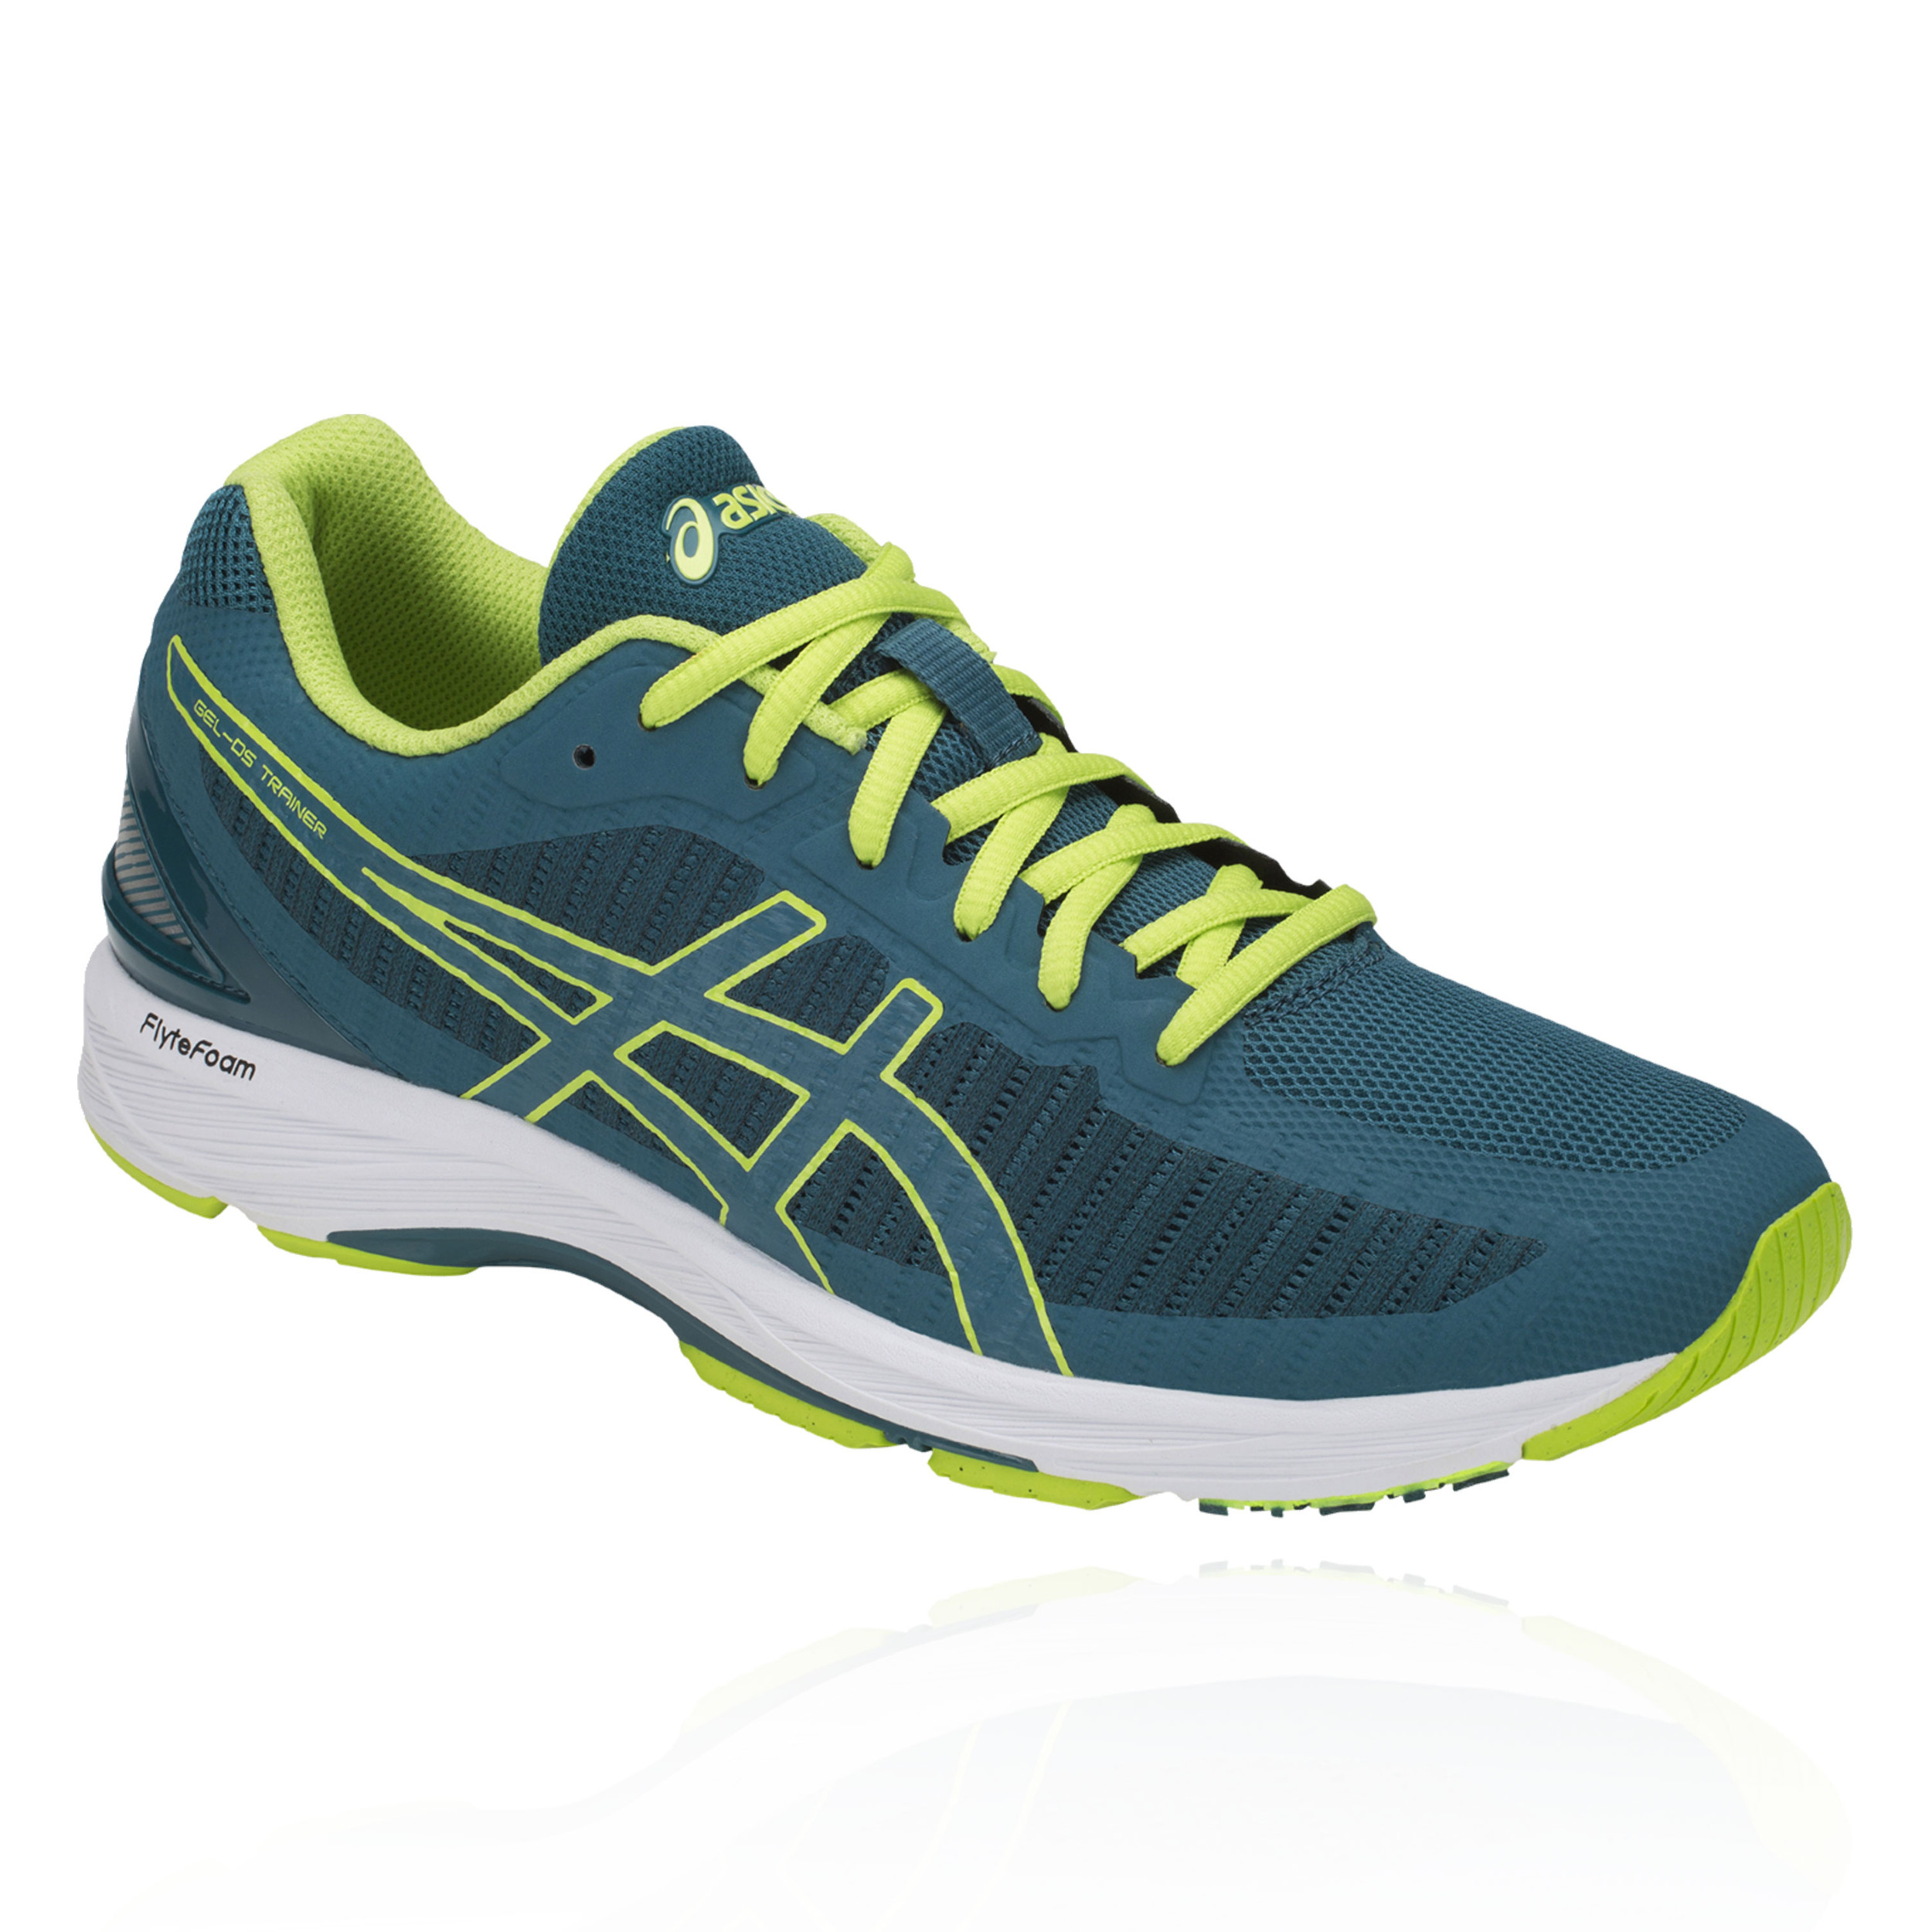 cheap for discount bc213 0ec77 Asics Hommes Gel-DS Trainer 23 Chaussures De Course À Pied Baskets Sport  Running